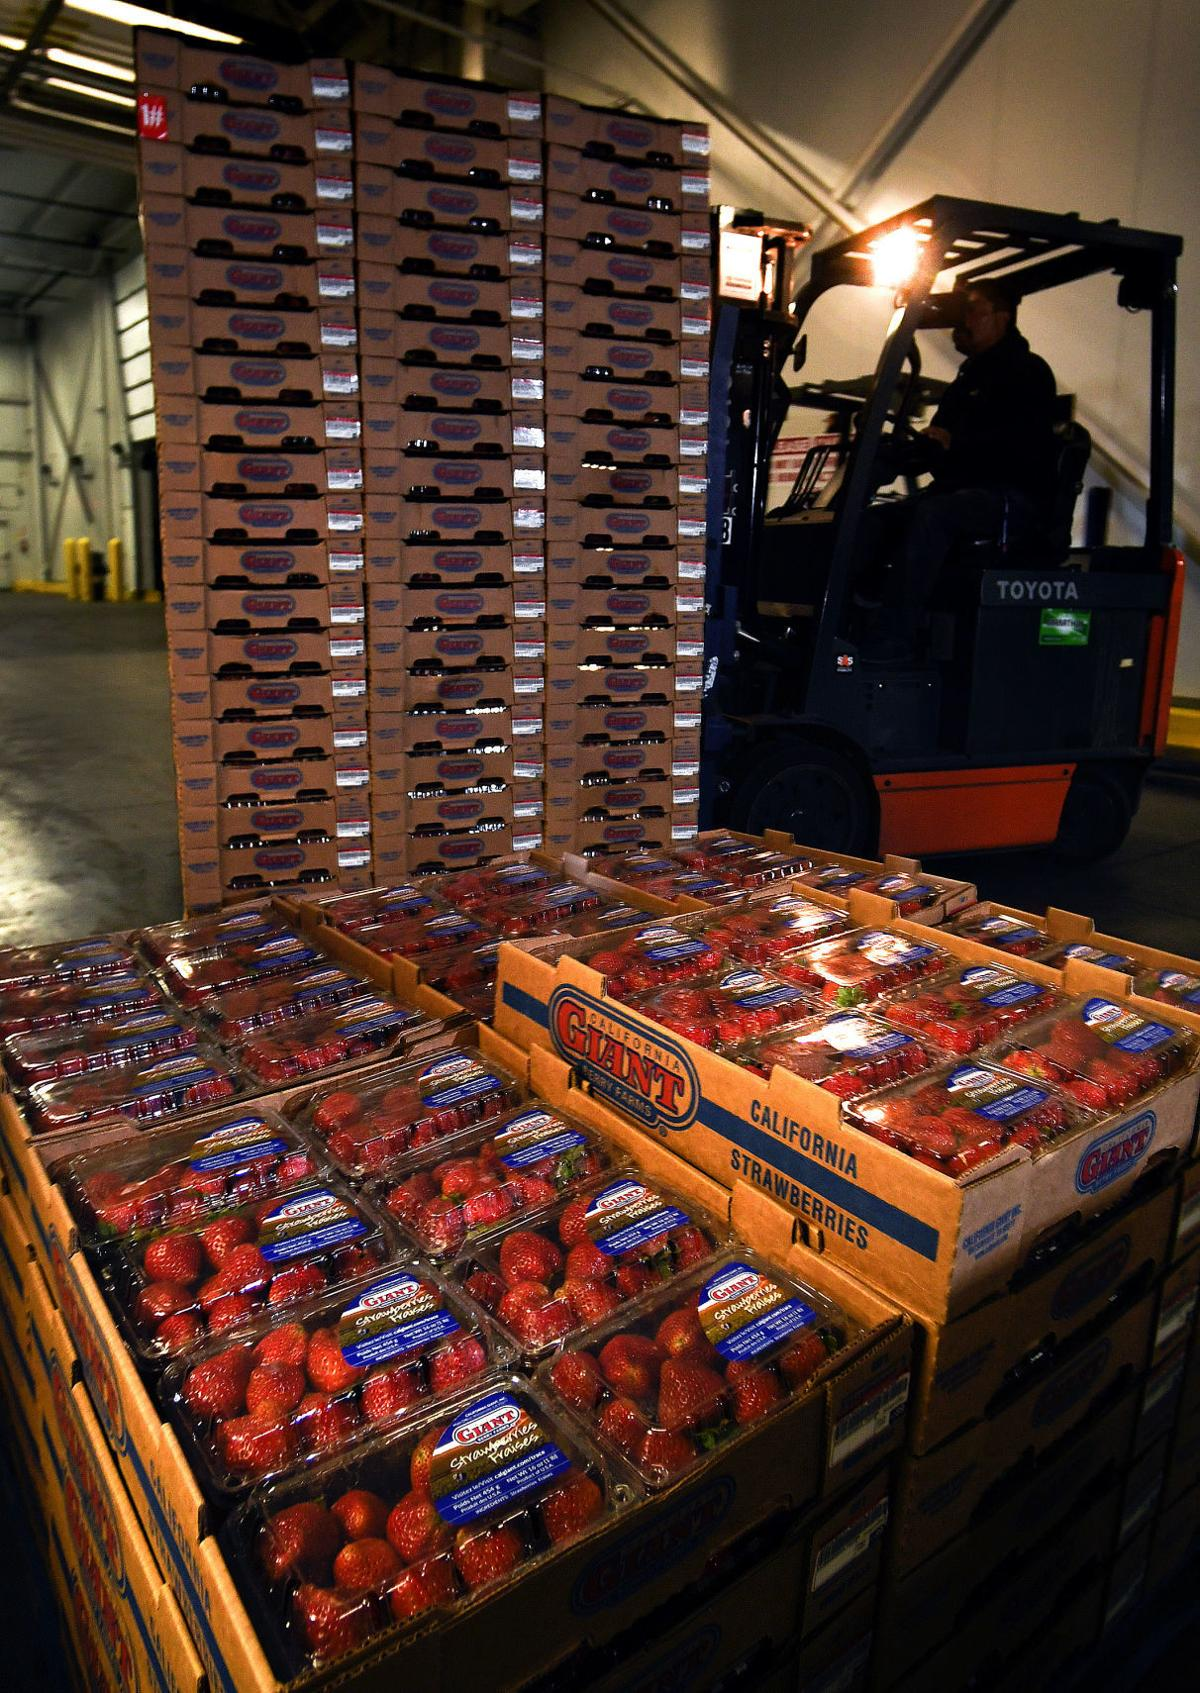 082719 Chinese Costco strawberries 01.jpg